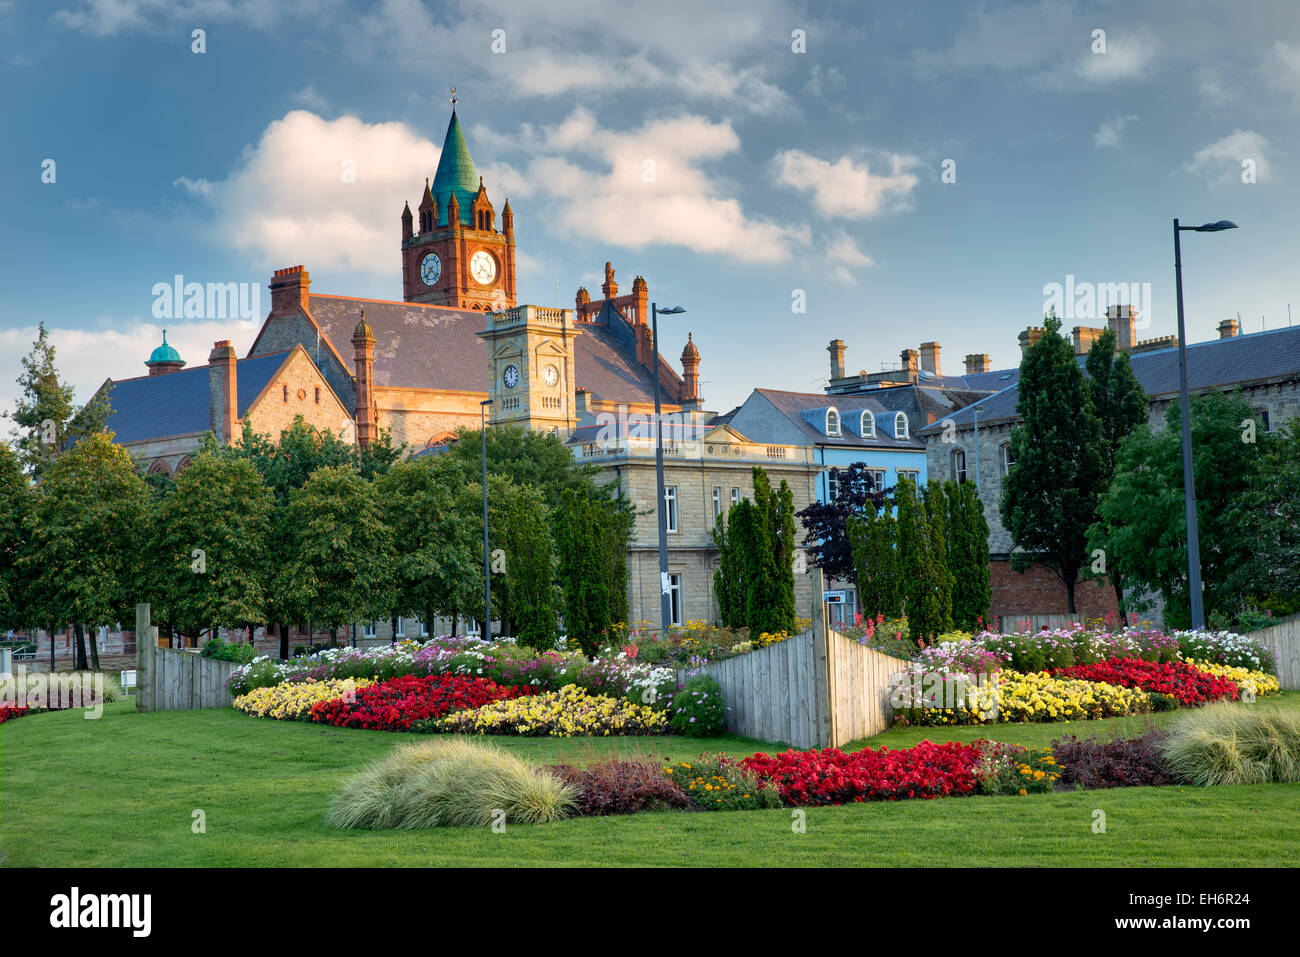 Guildhall with flower garden. Derry, Northern Ireland - Stock Image